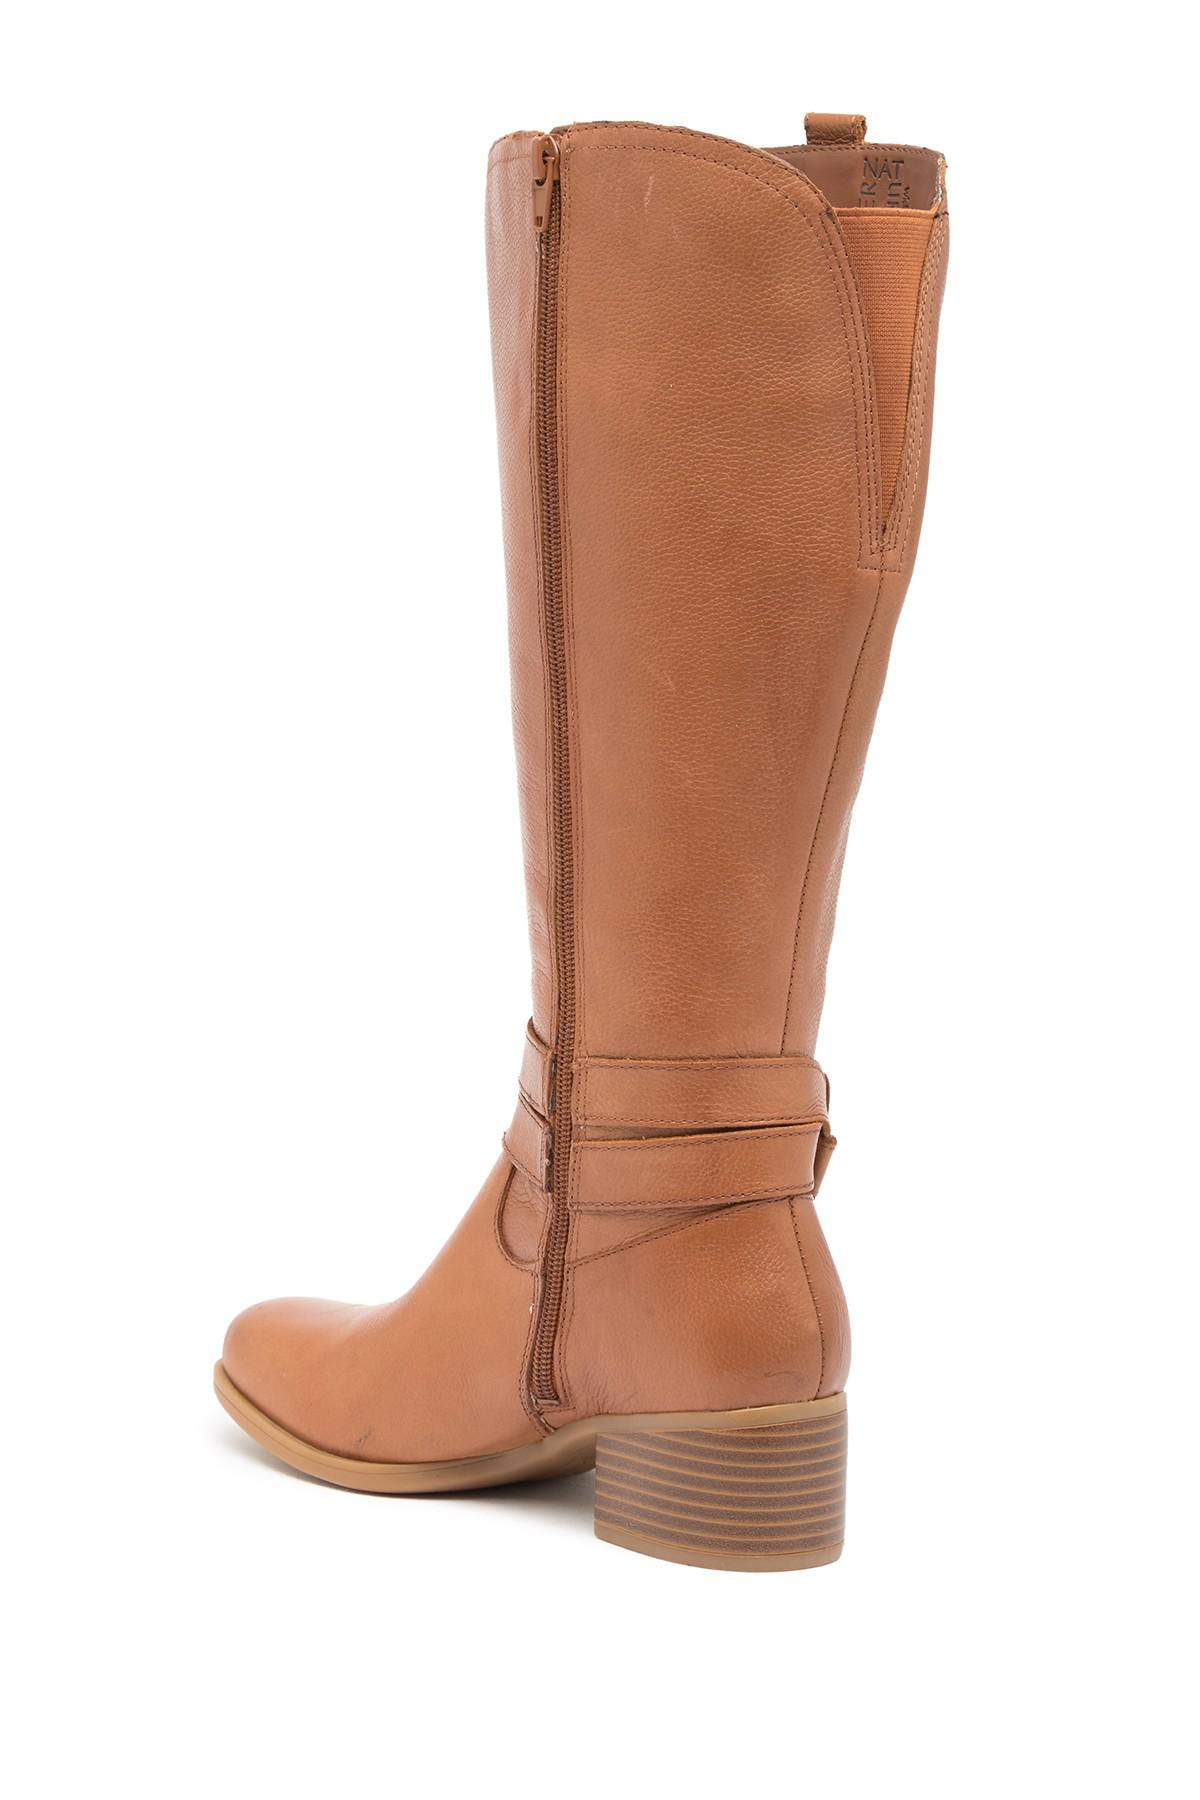 9794ce8002ee Naturalizer - Brown Kim Ankle Strap Leather Boot - Wide Width Available -  Lyst. View fullscreen